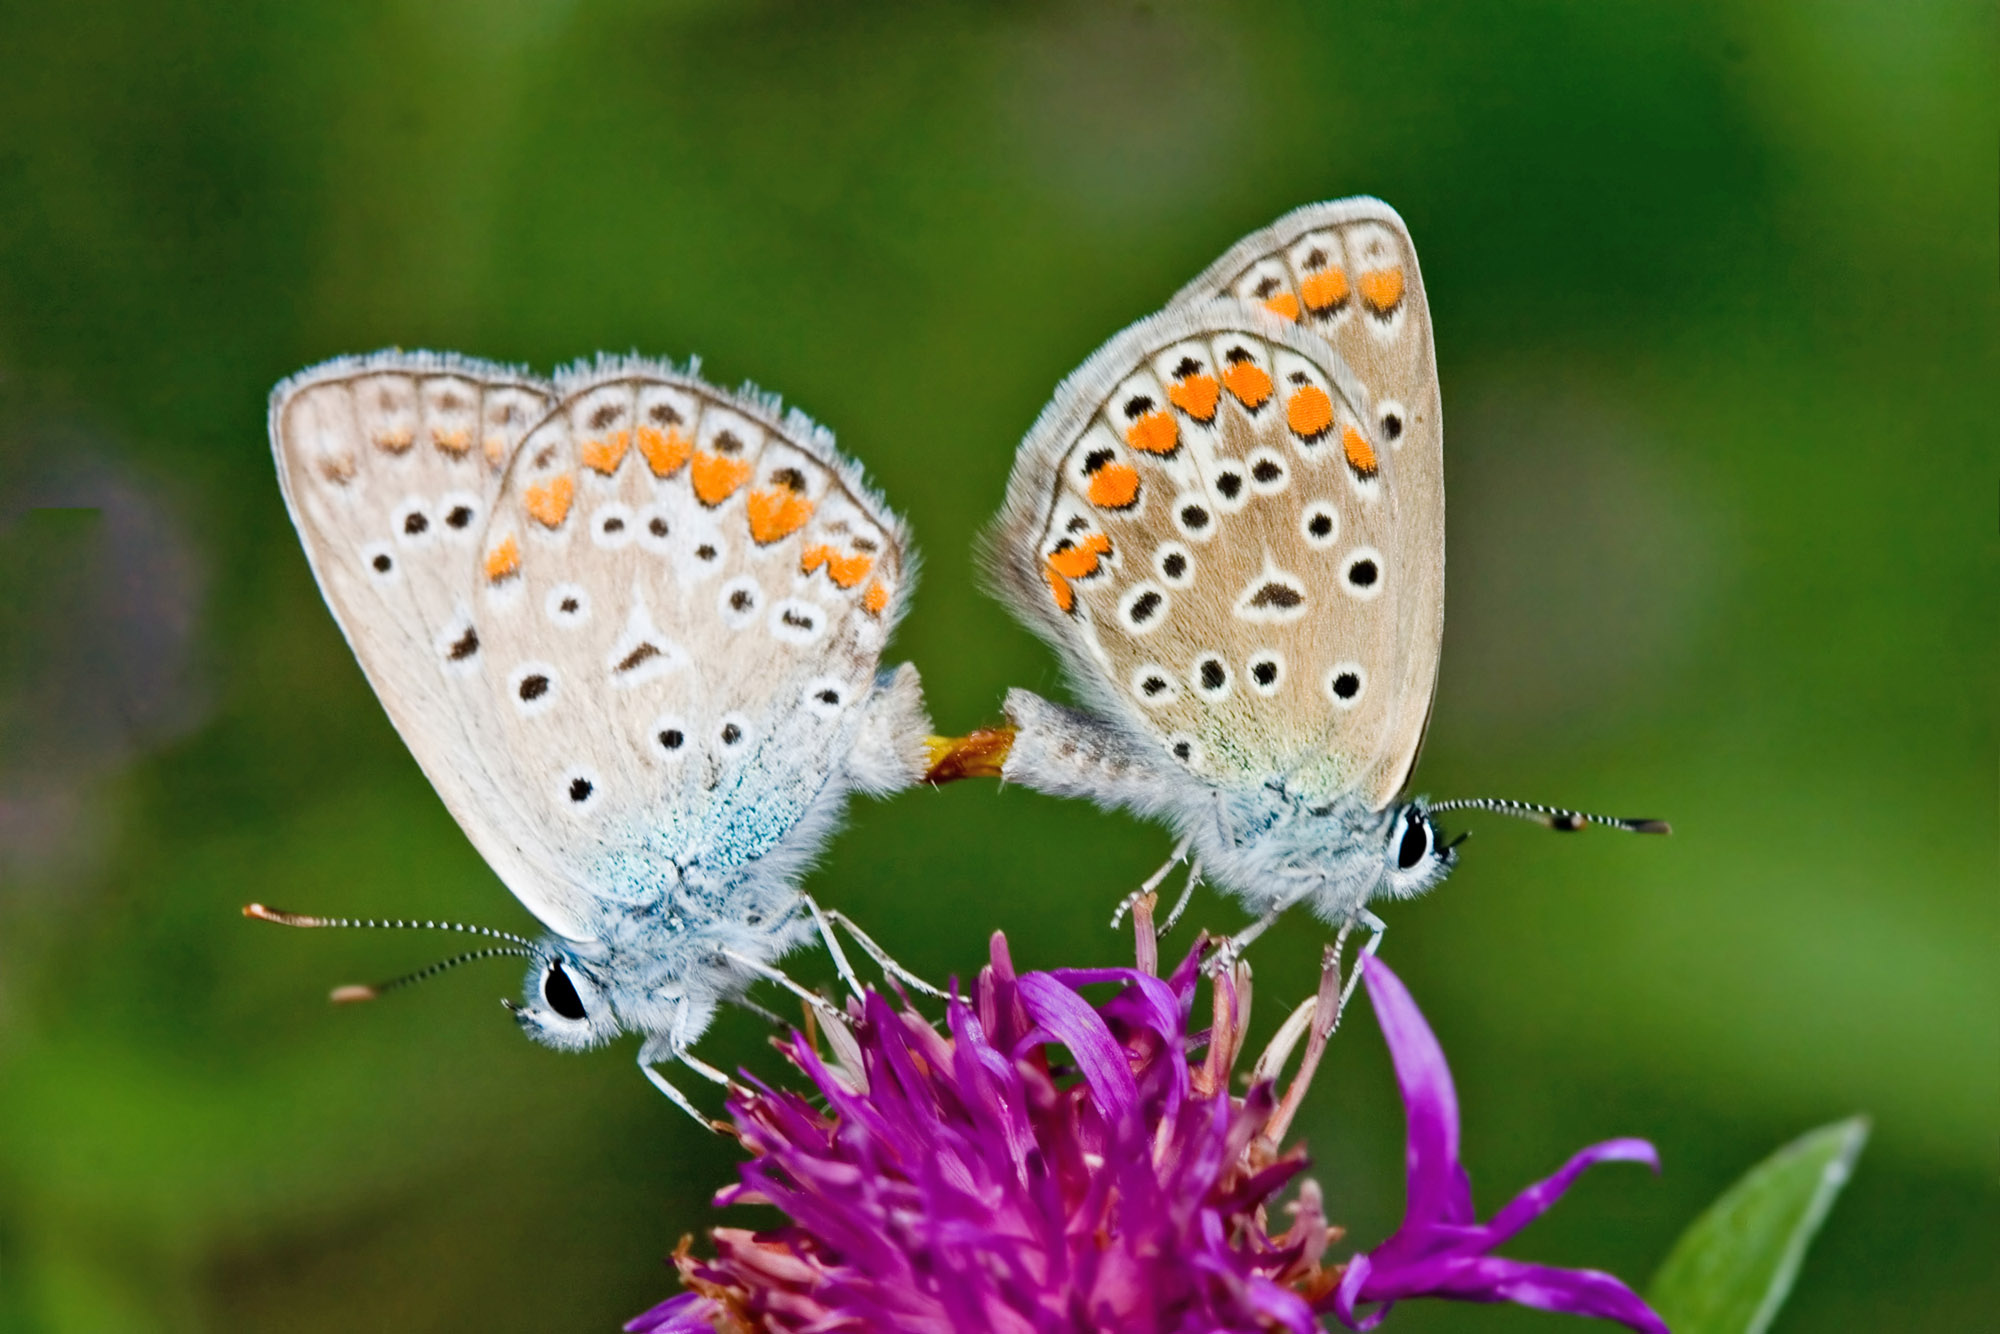 Promiscuous female butterflies can control which male fertilizes their eggs